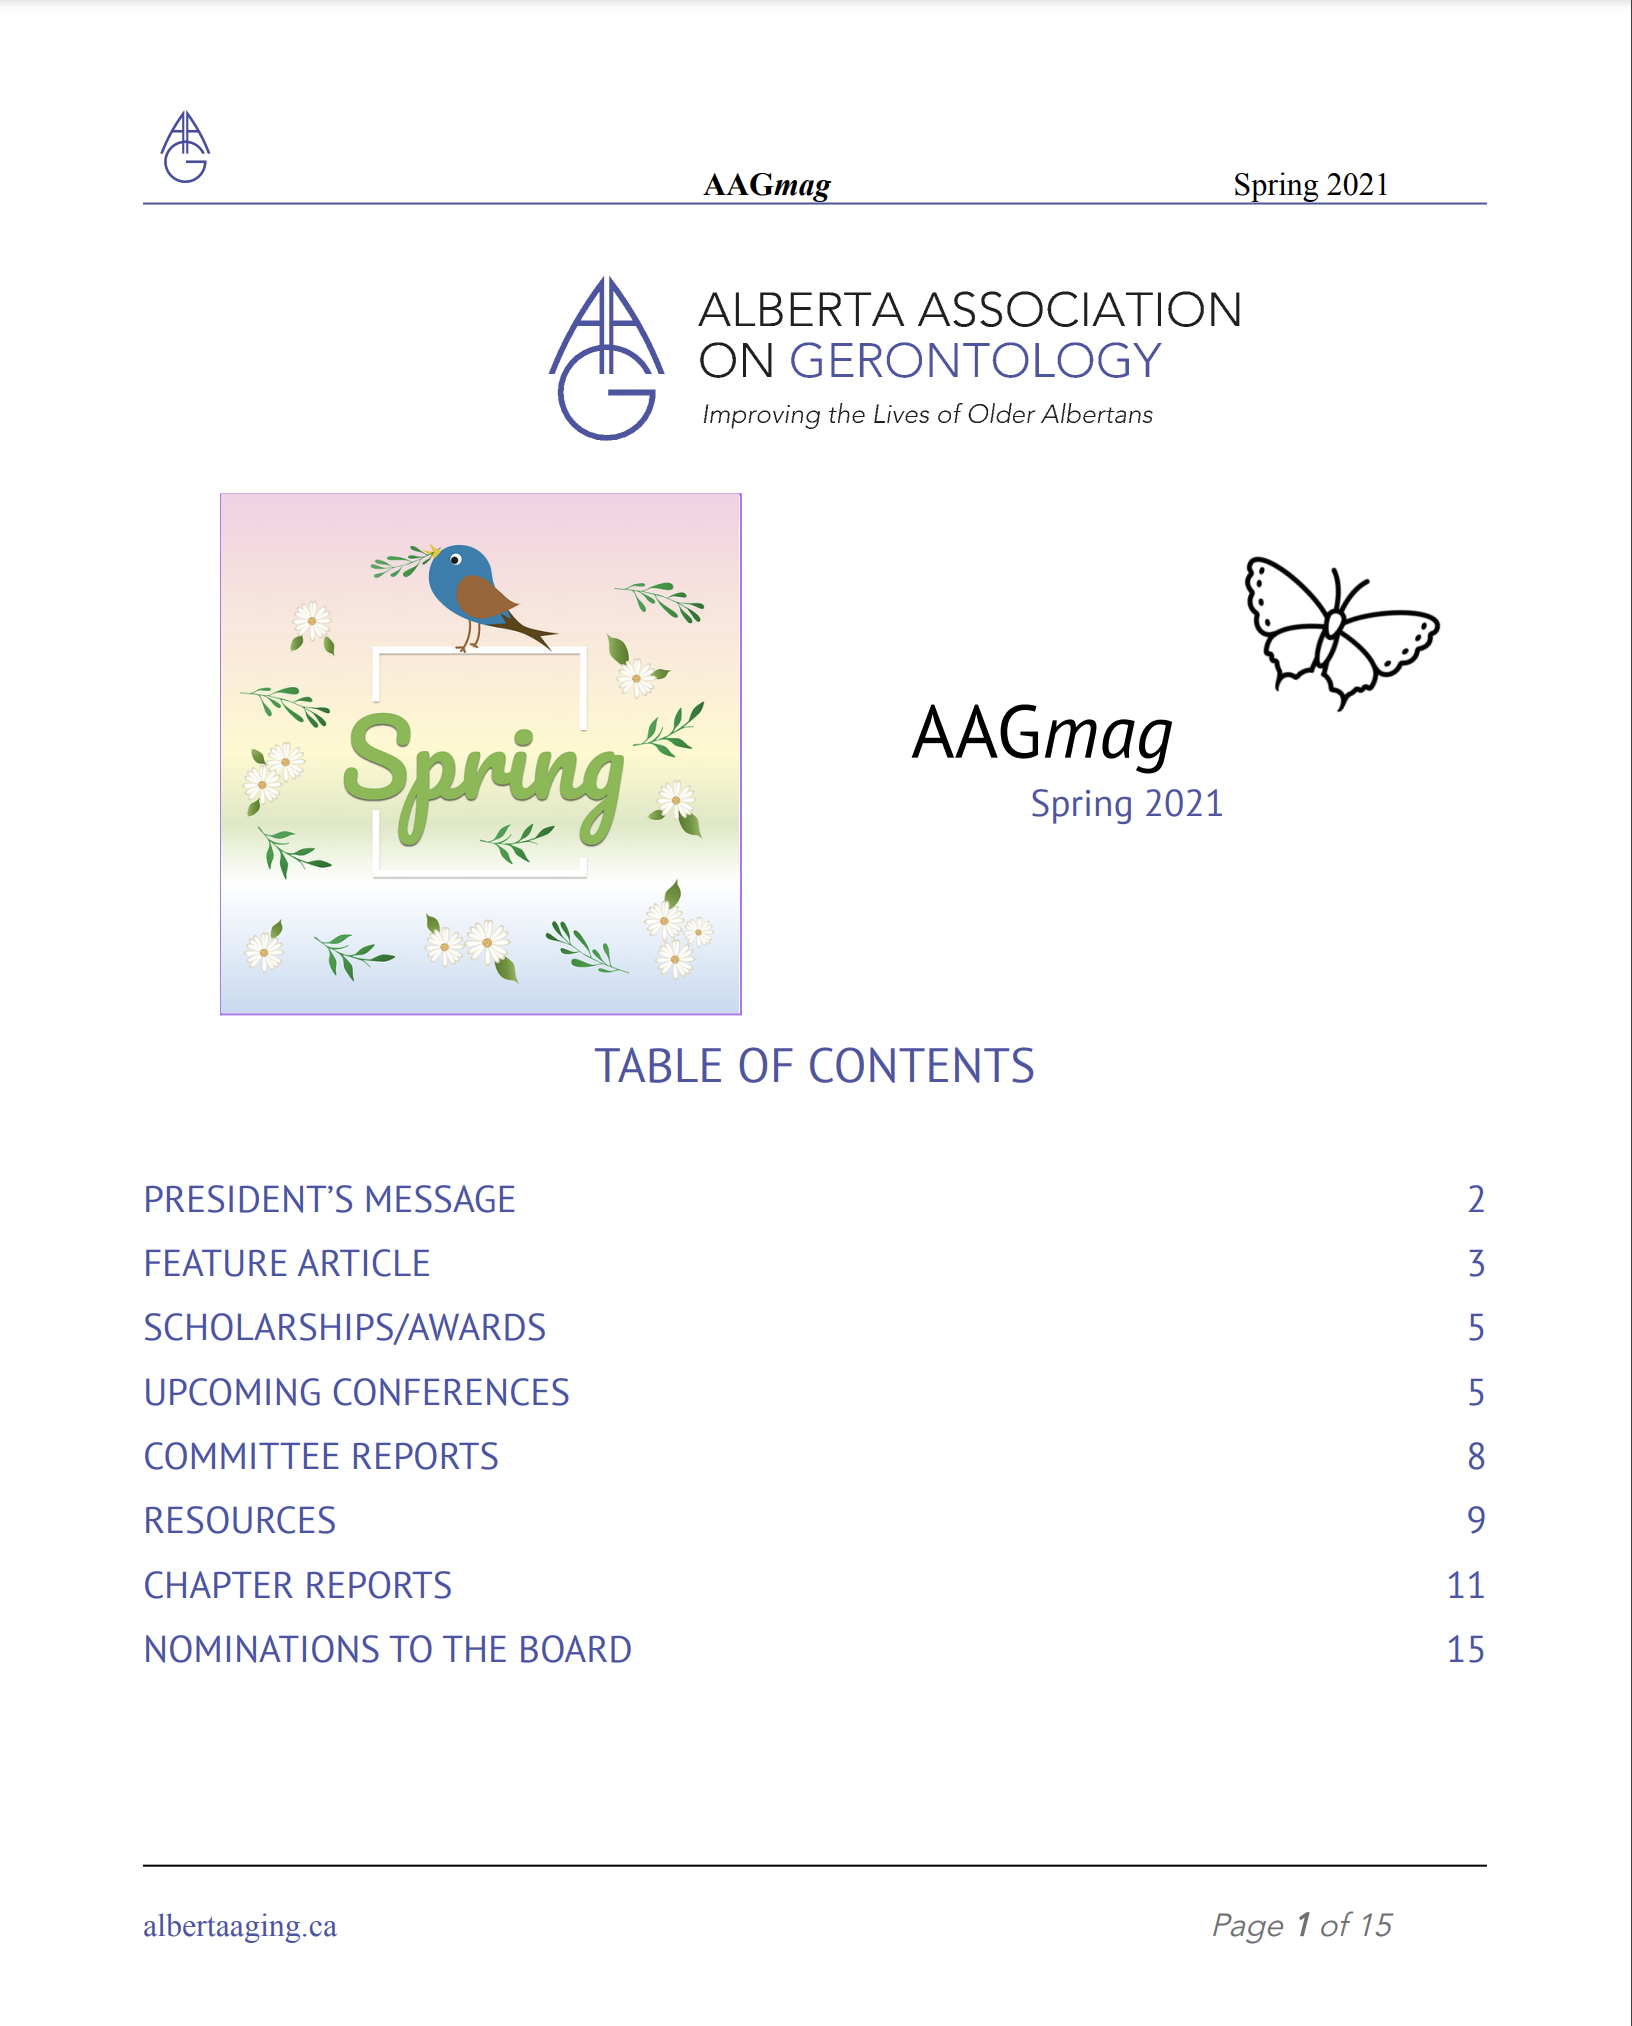 AAGmag Spring 2021 - Front Page Preview